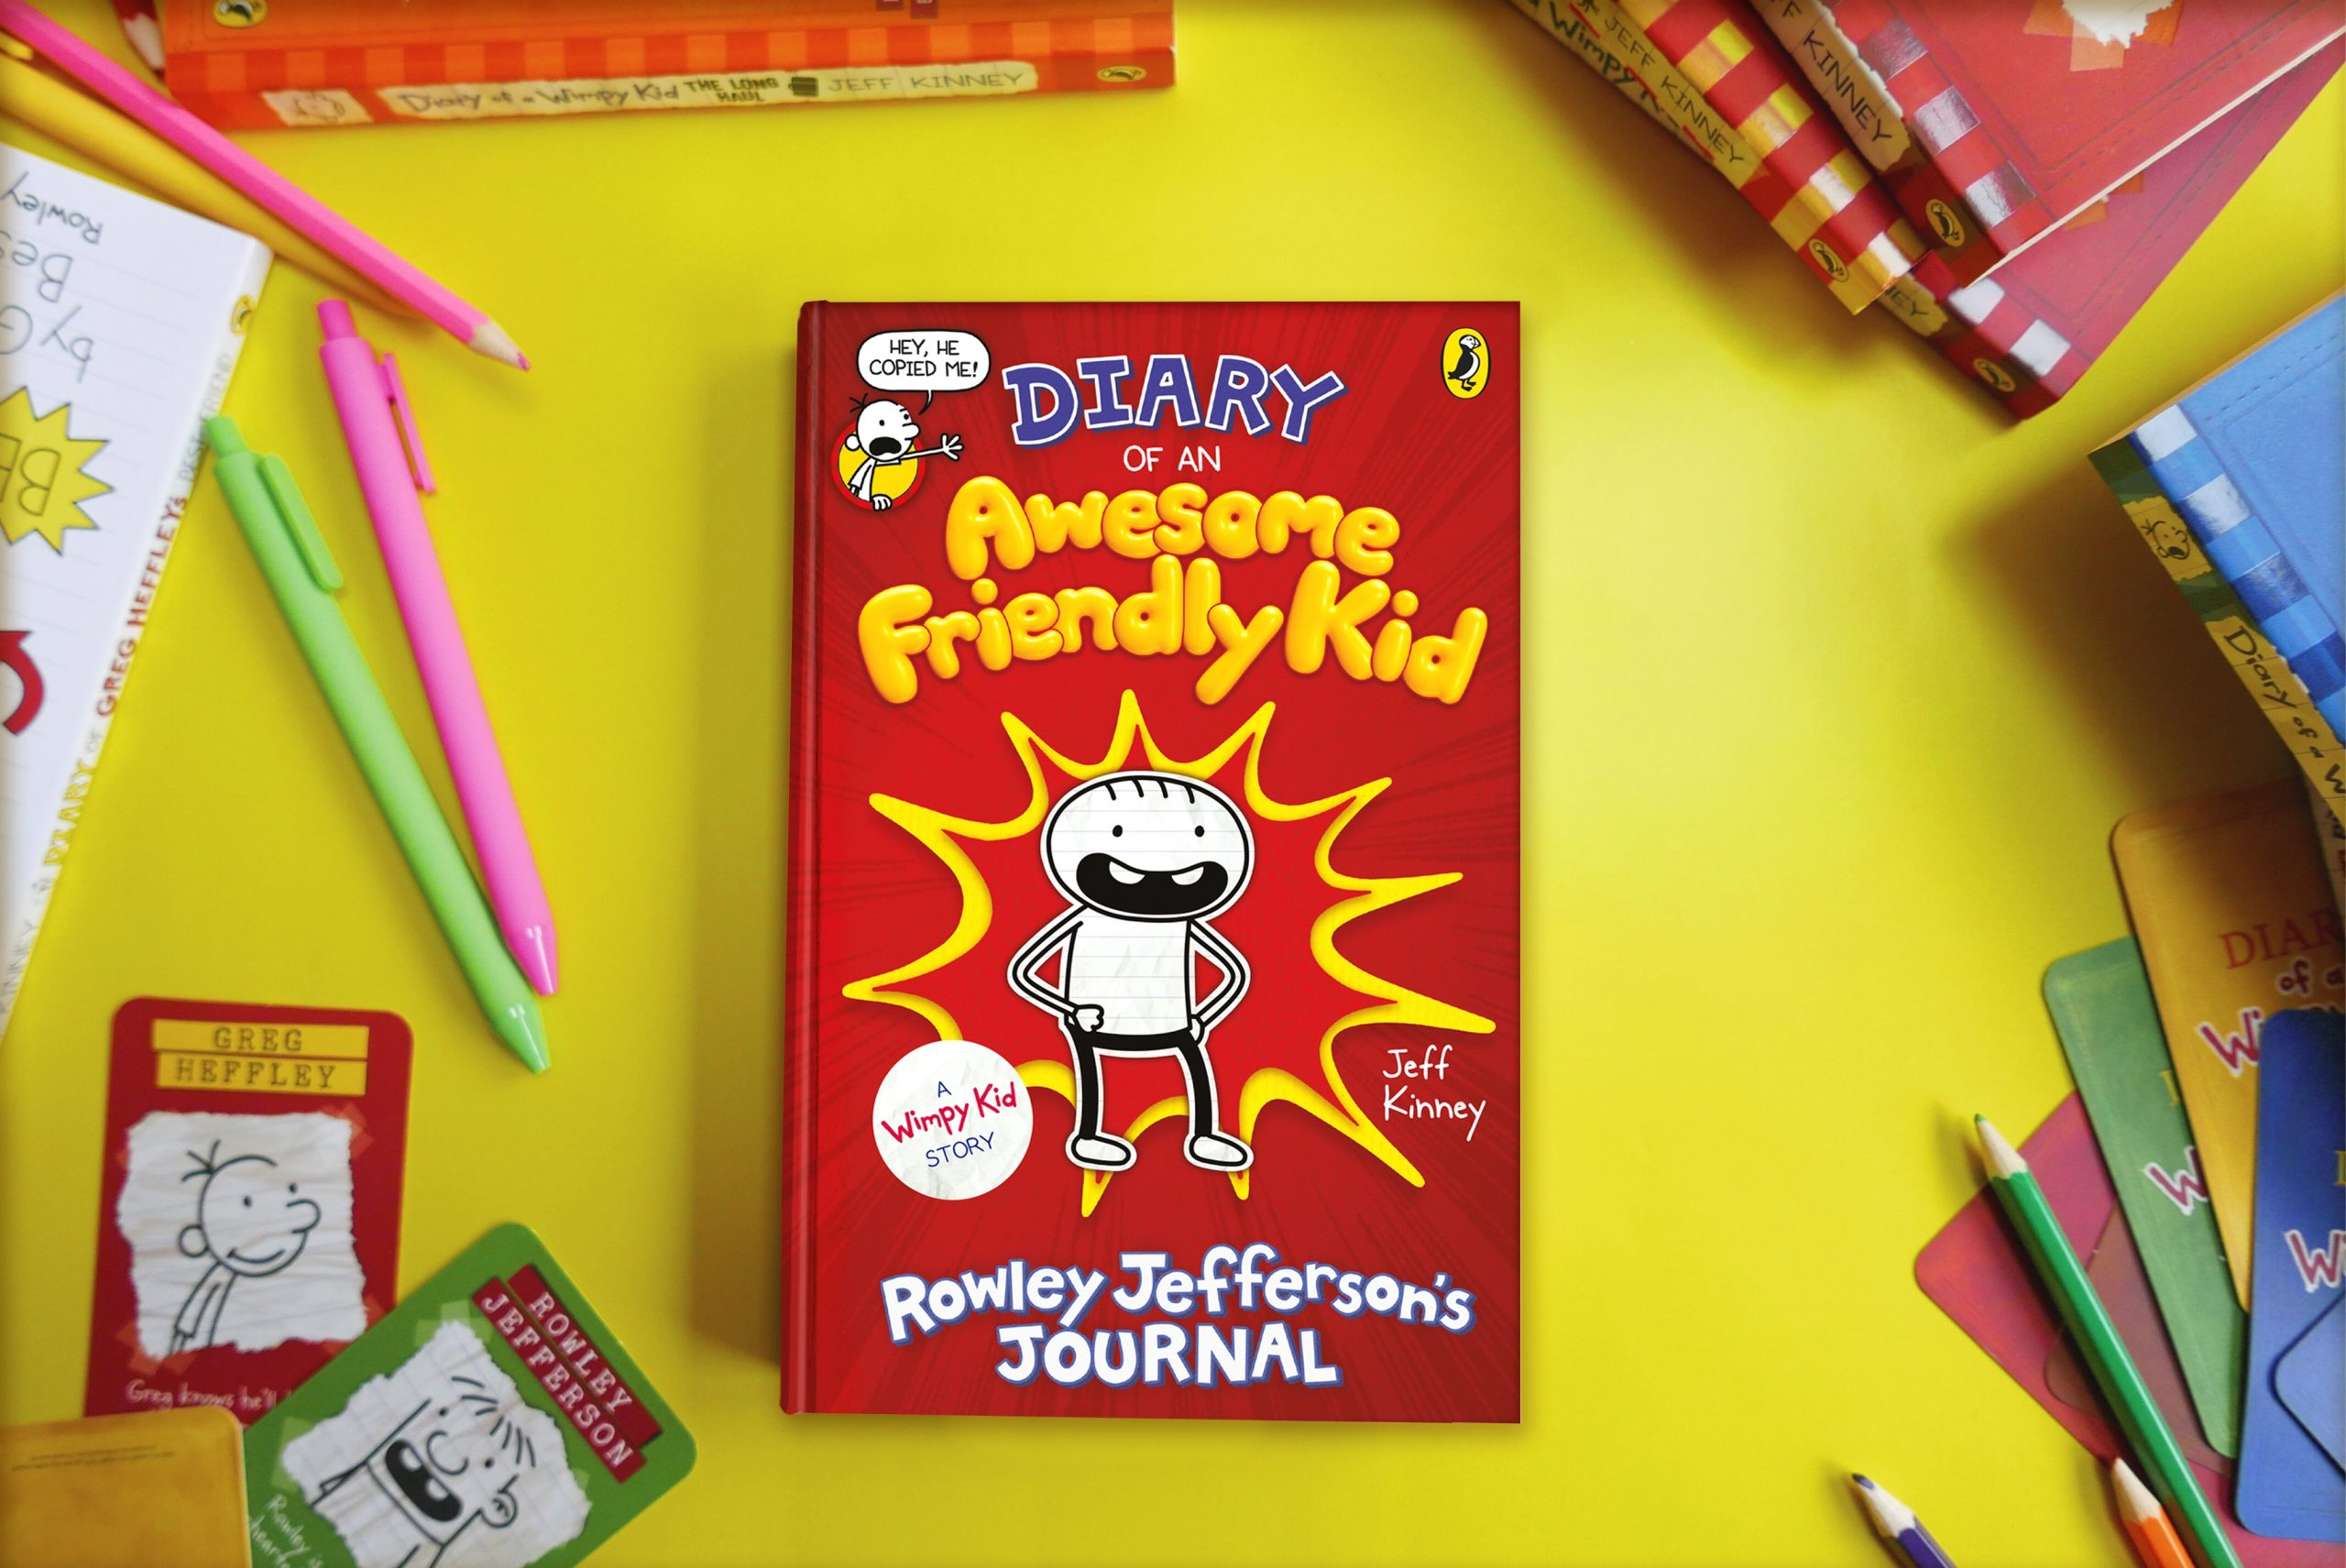 Meet the Wimpy Author of 'Diary of an Awesome Friendly Kid'!